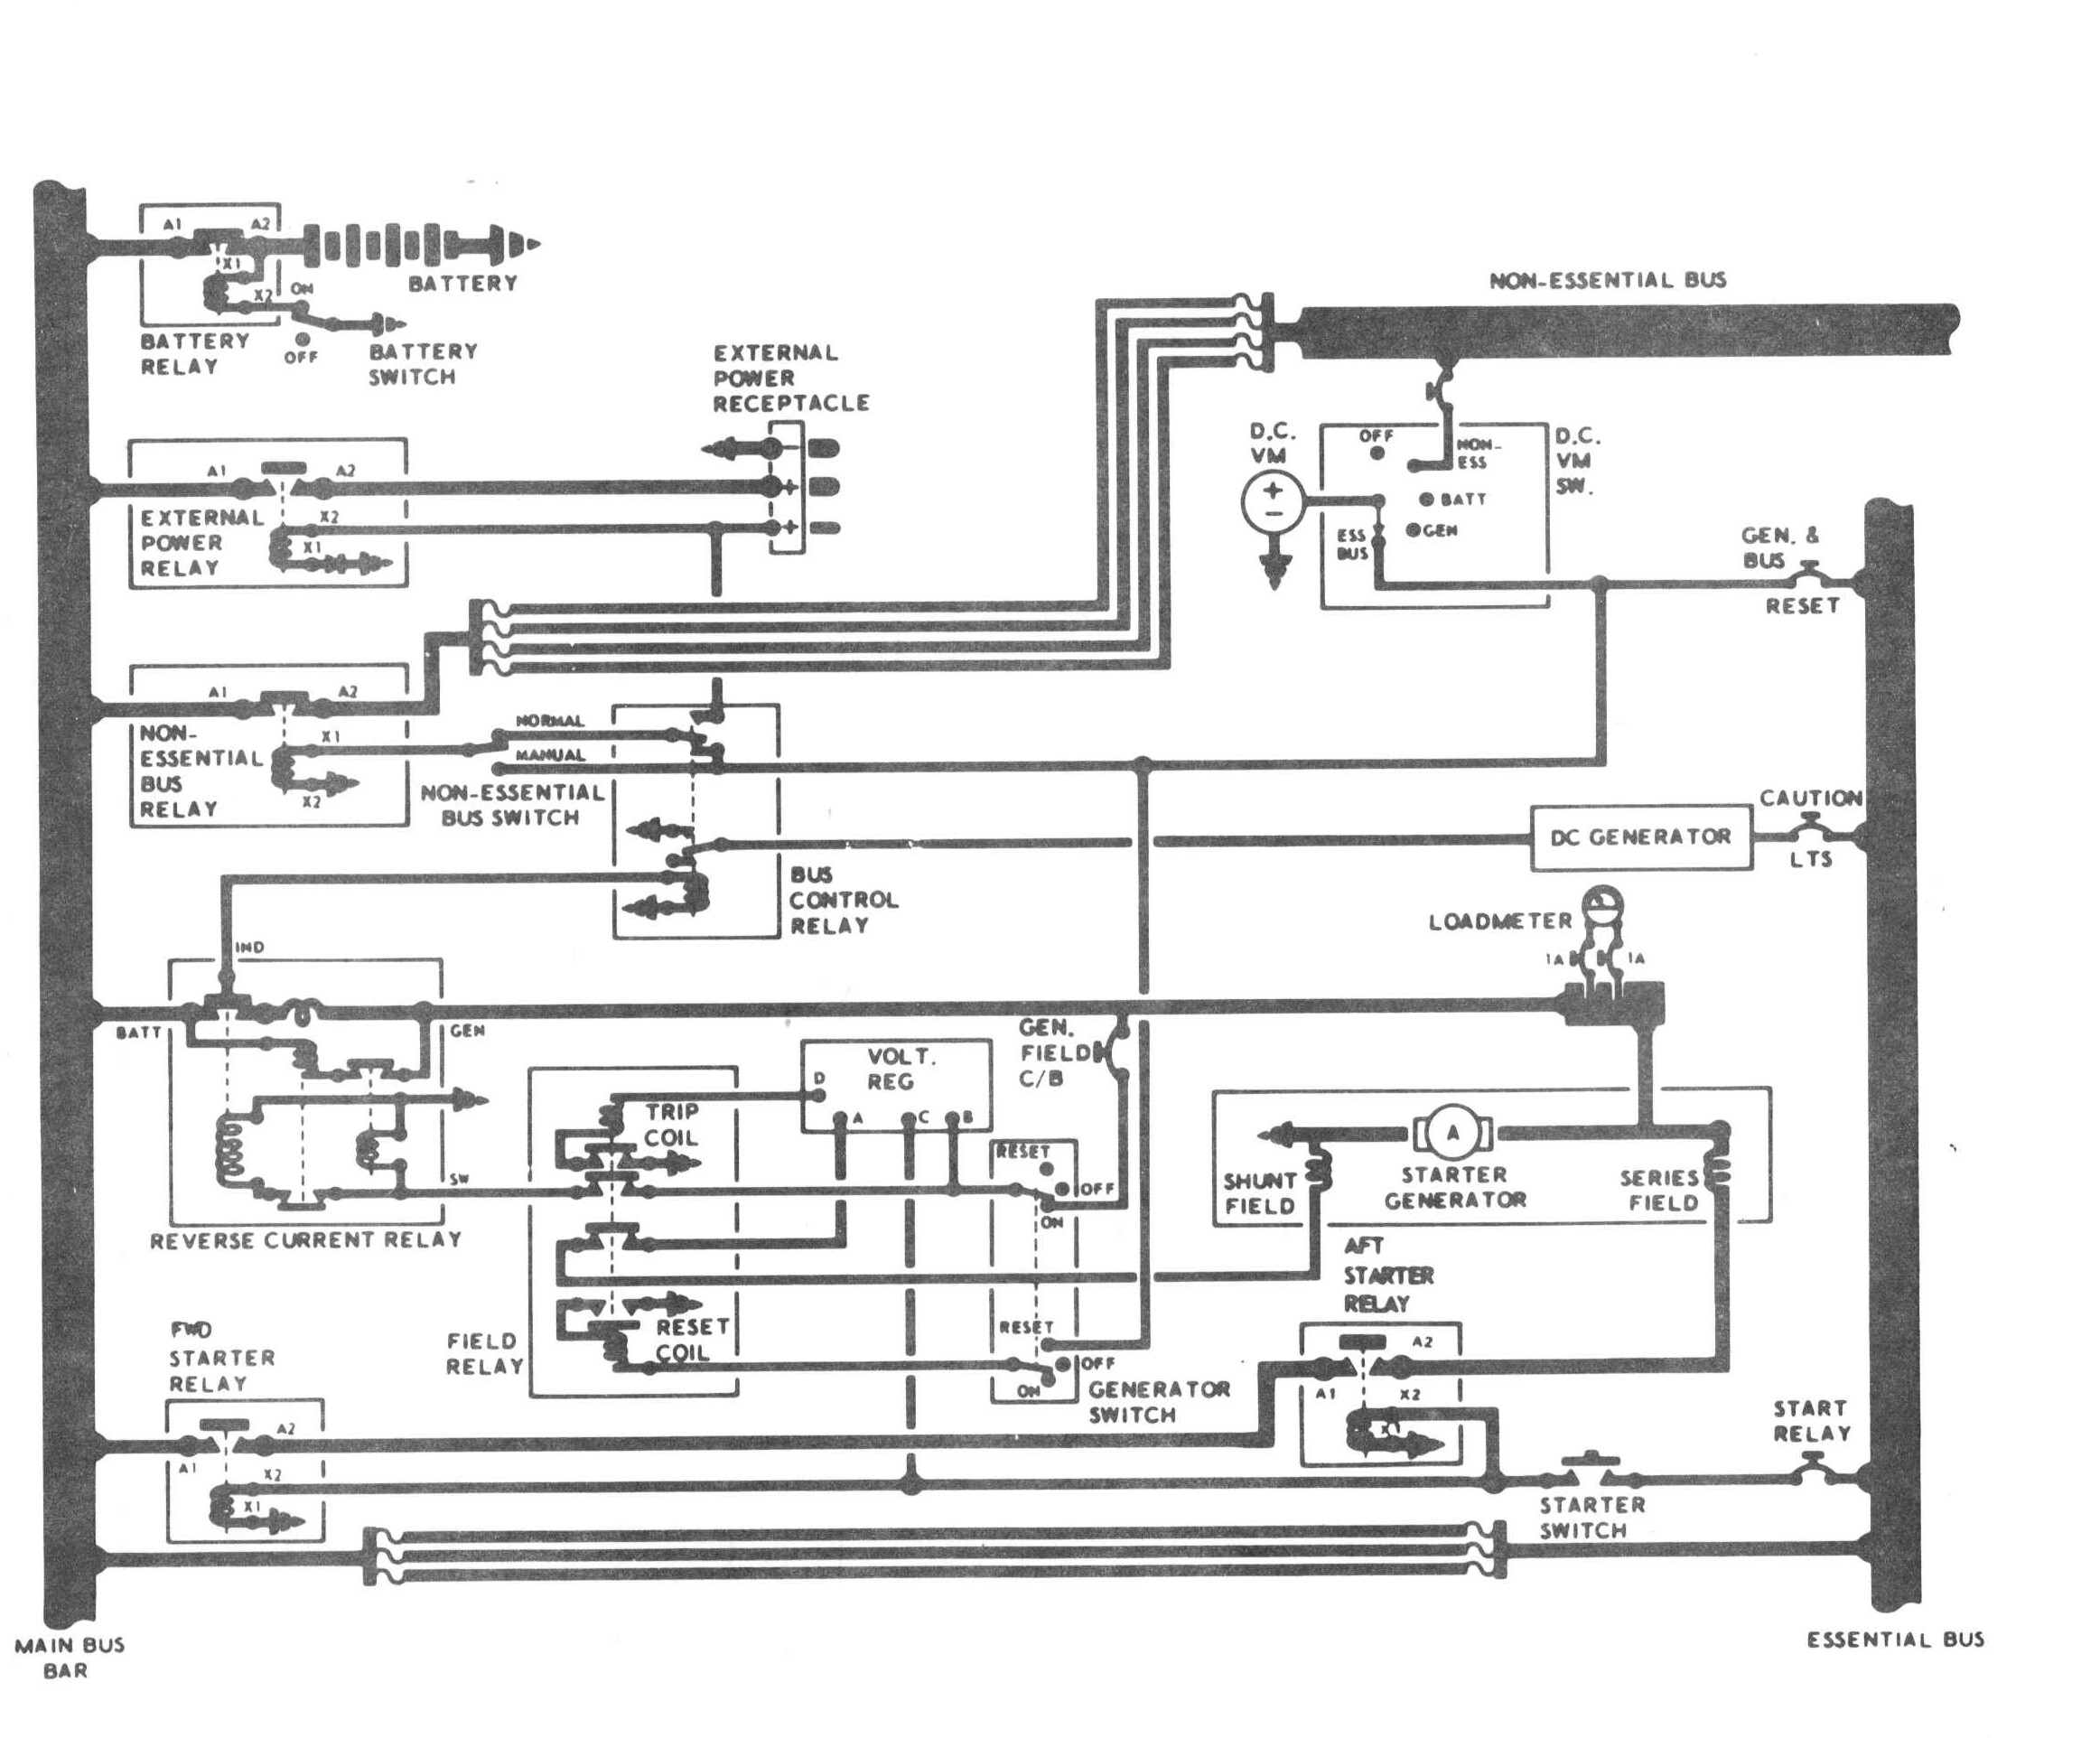 Bell Model 205a 1 Image Downloads Electric Relay Circuit Dc Power System